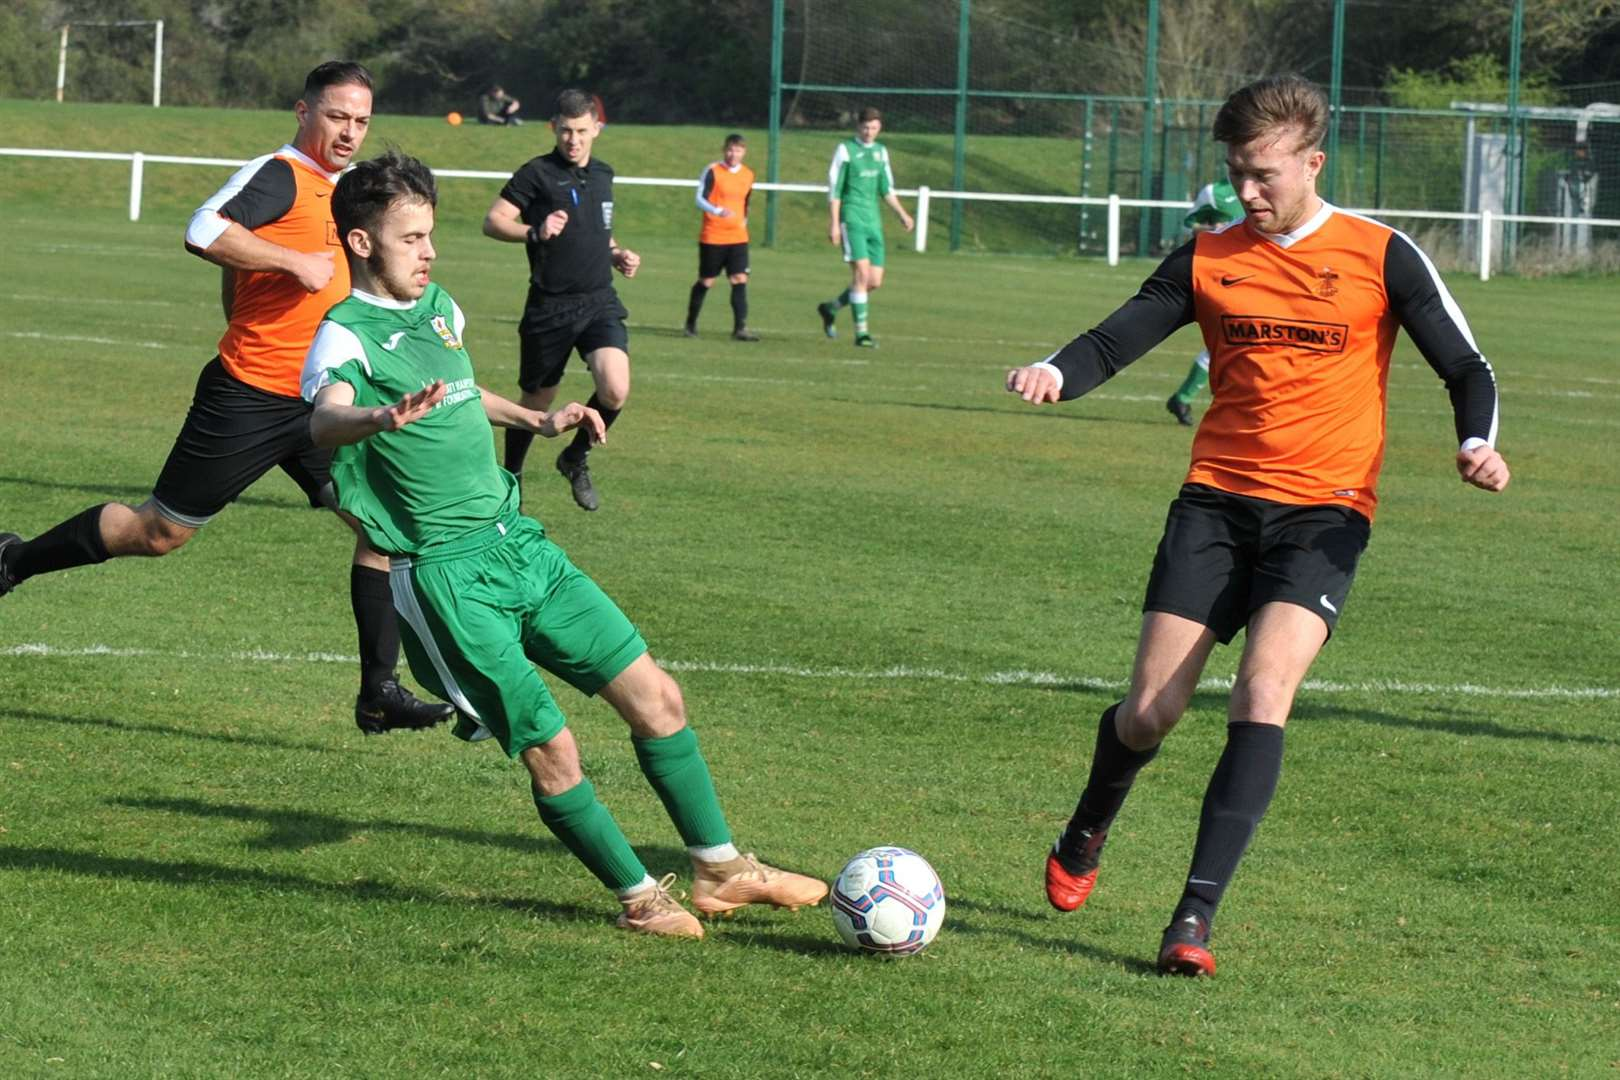 Cottesmore ran out 3-0 winners against Barlestone St Giles on Saturday. Photo: Alan Walters (8188177)